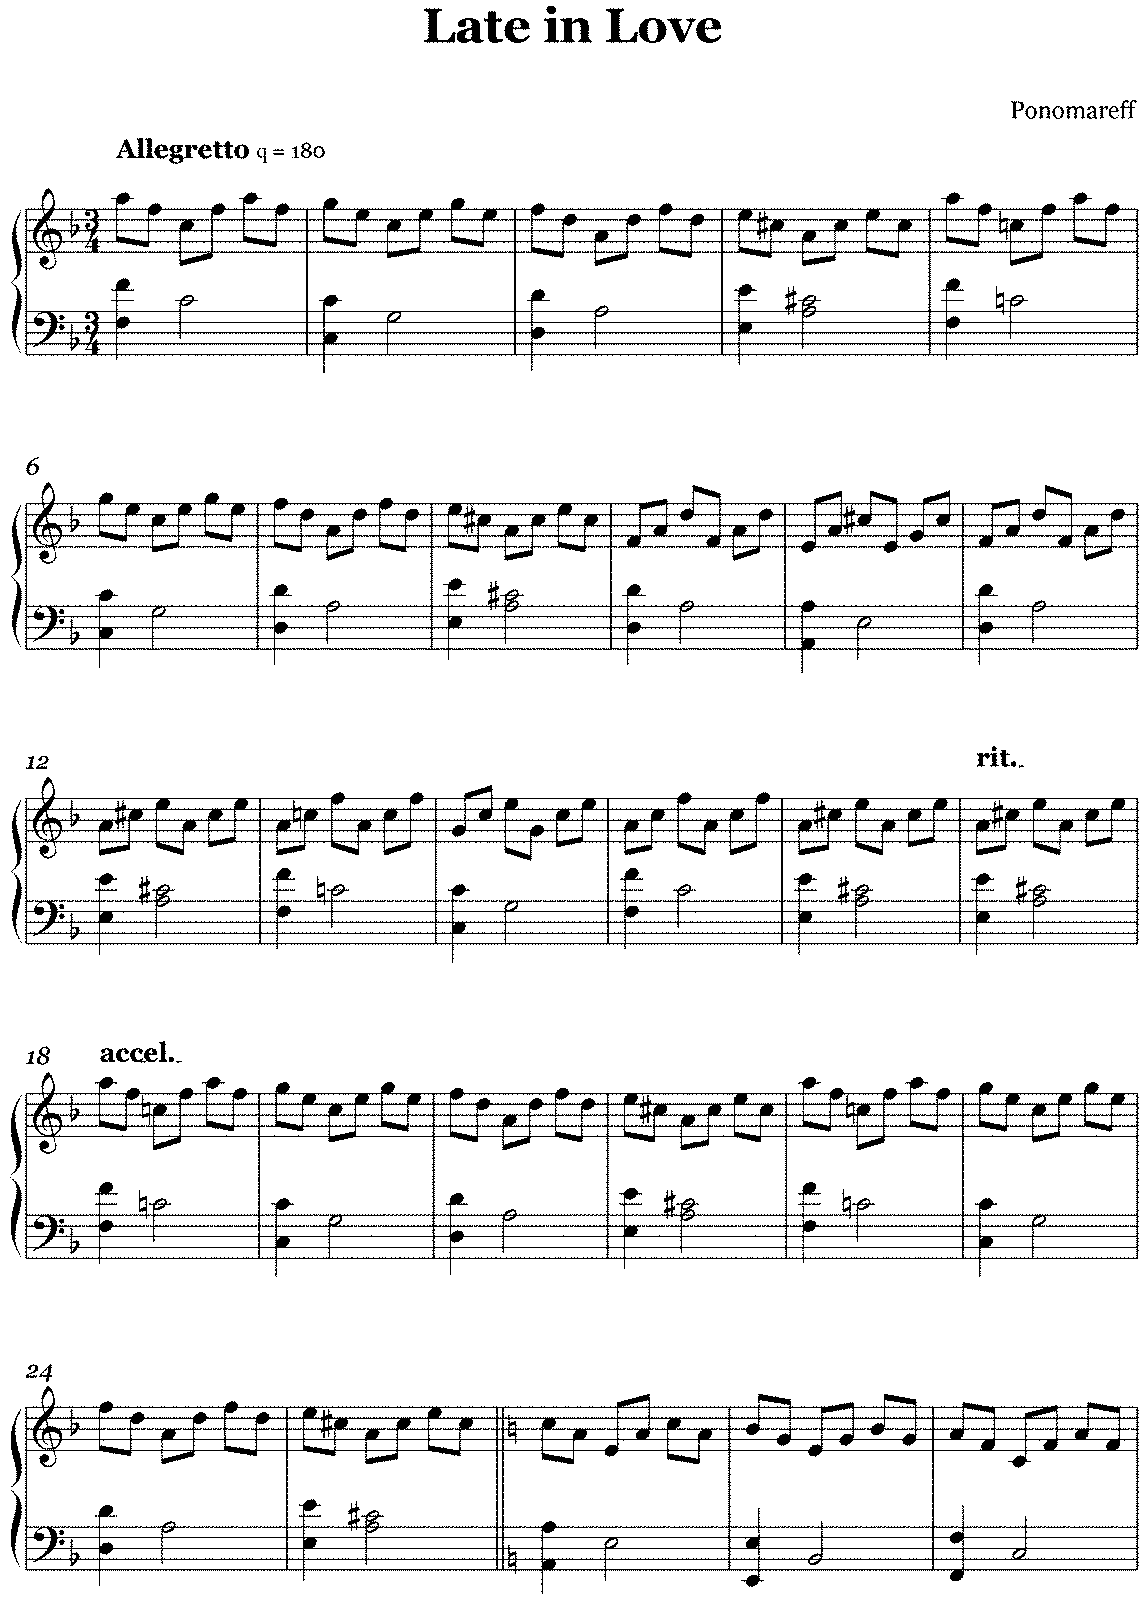 PMLP476135-Late in love solo piano.pdf